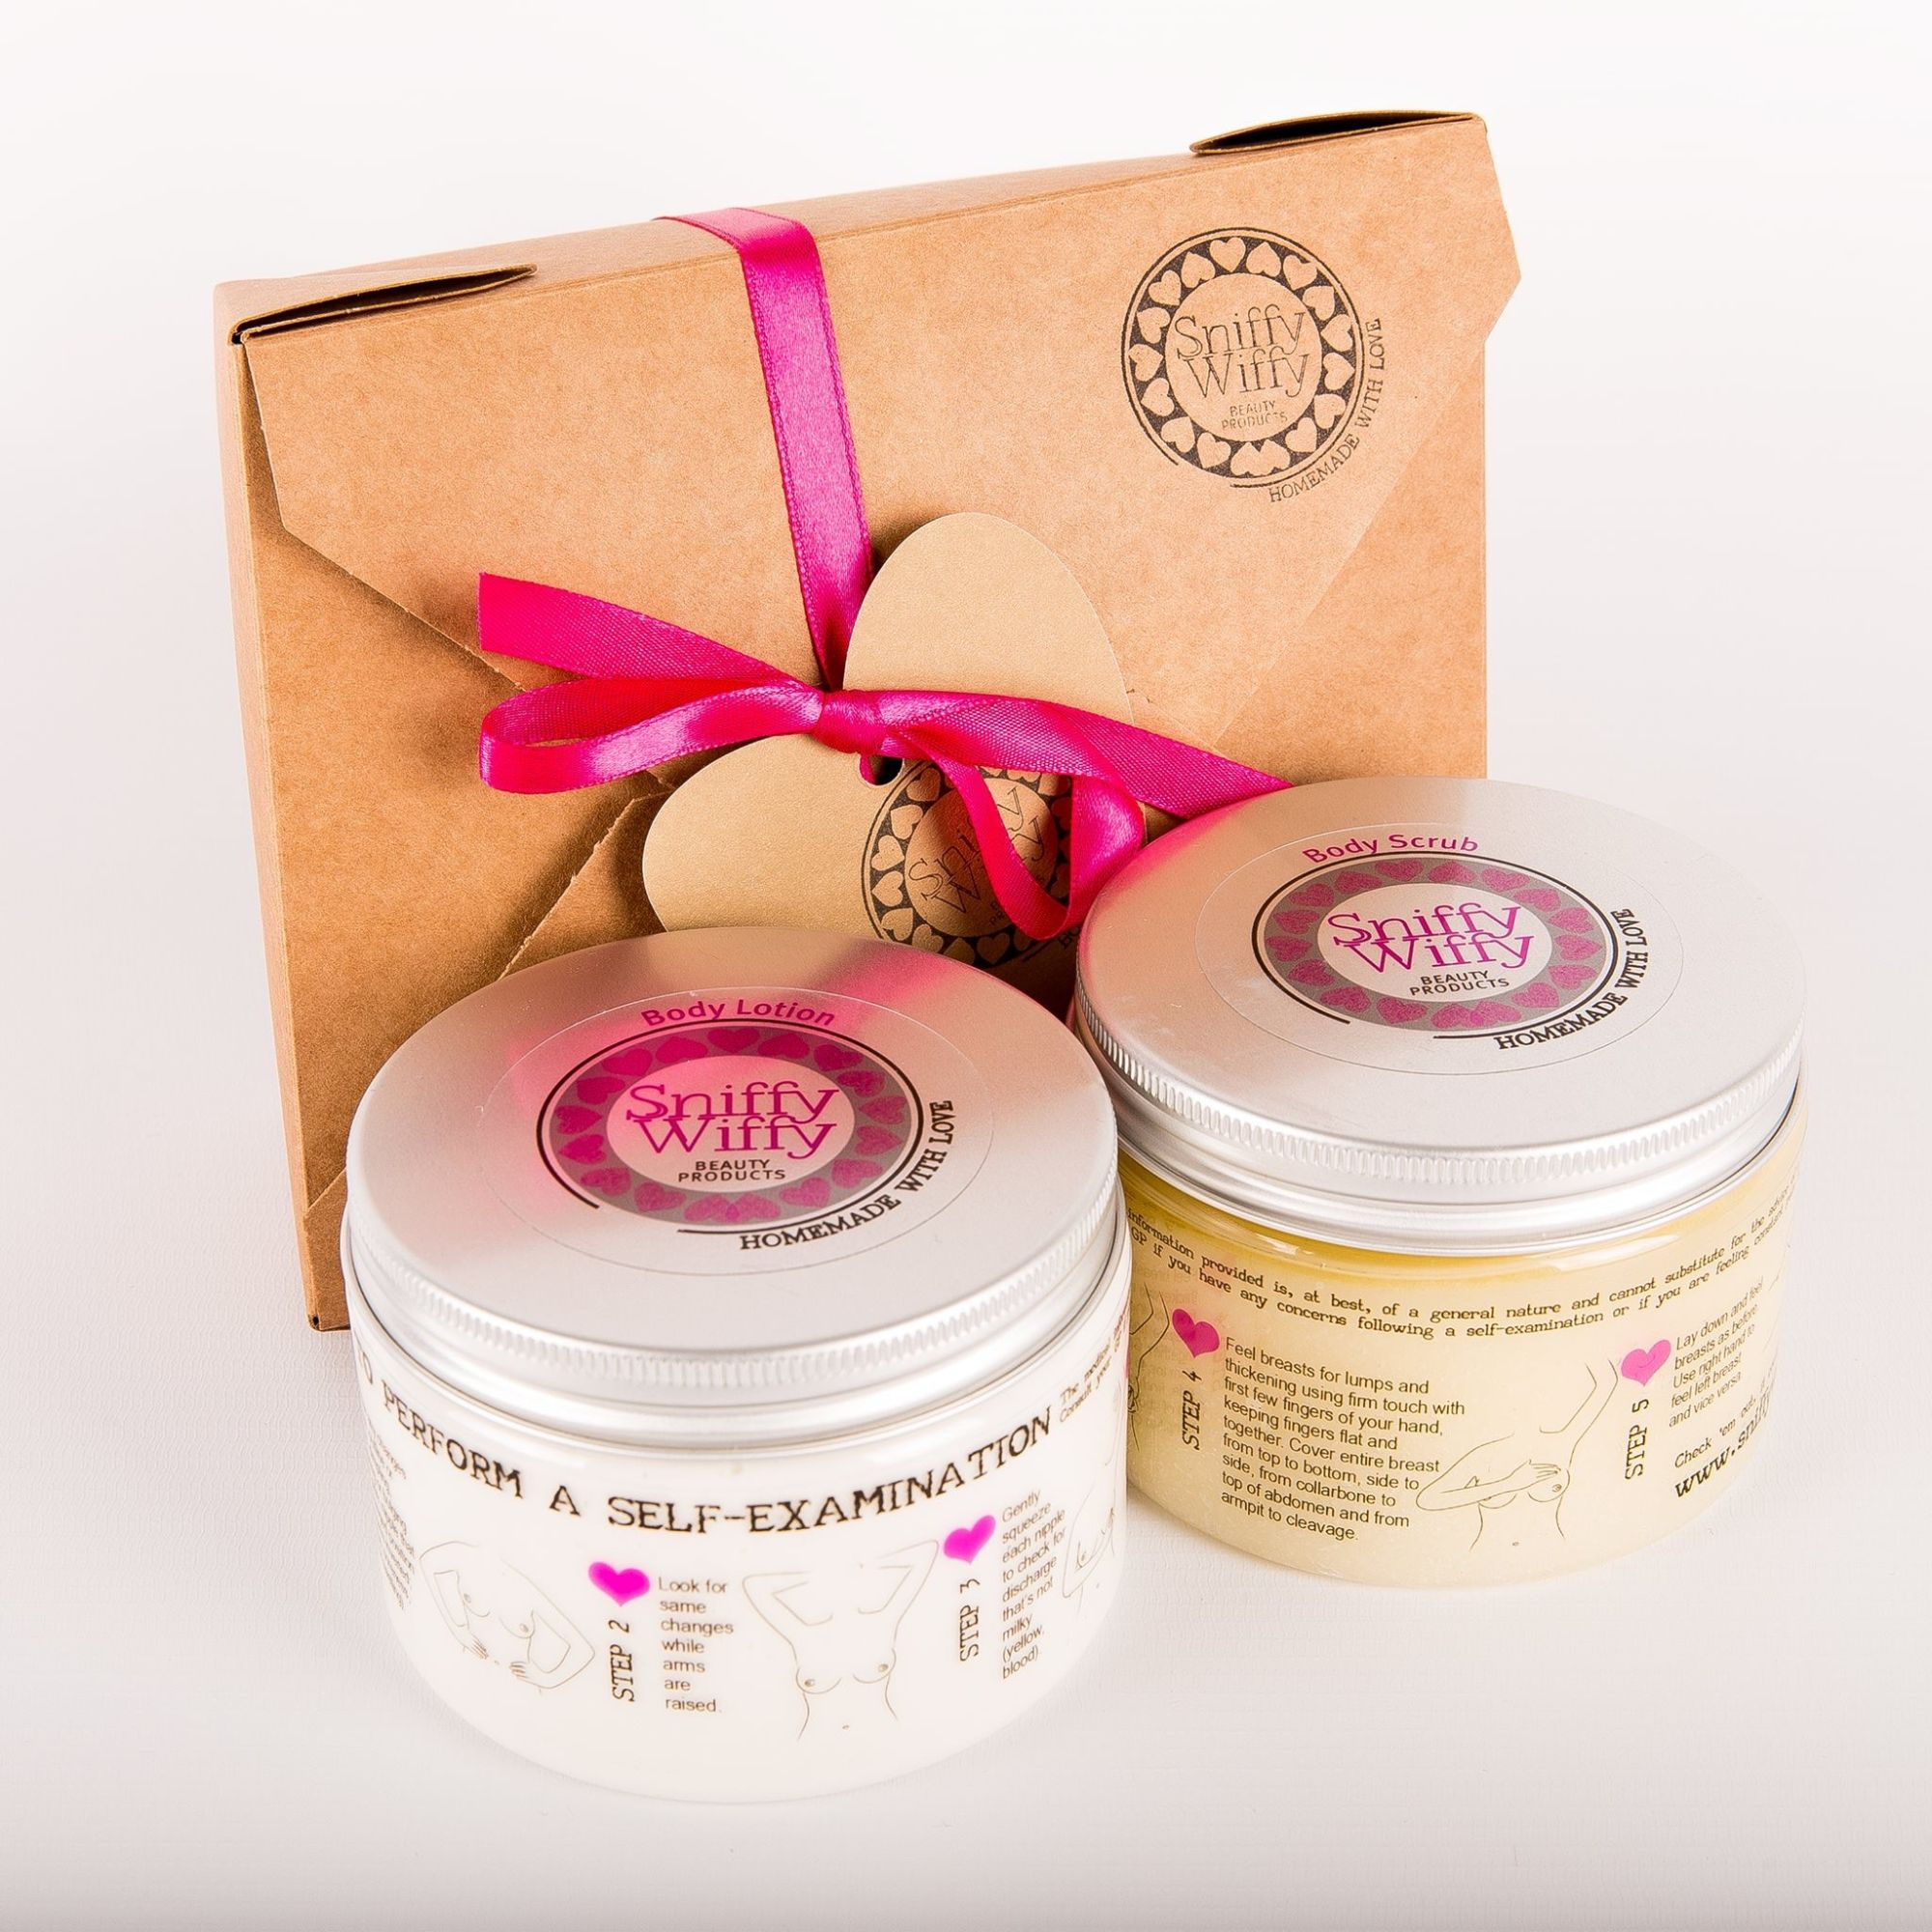 lotion and scrub gift set